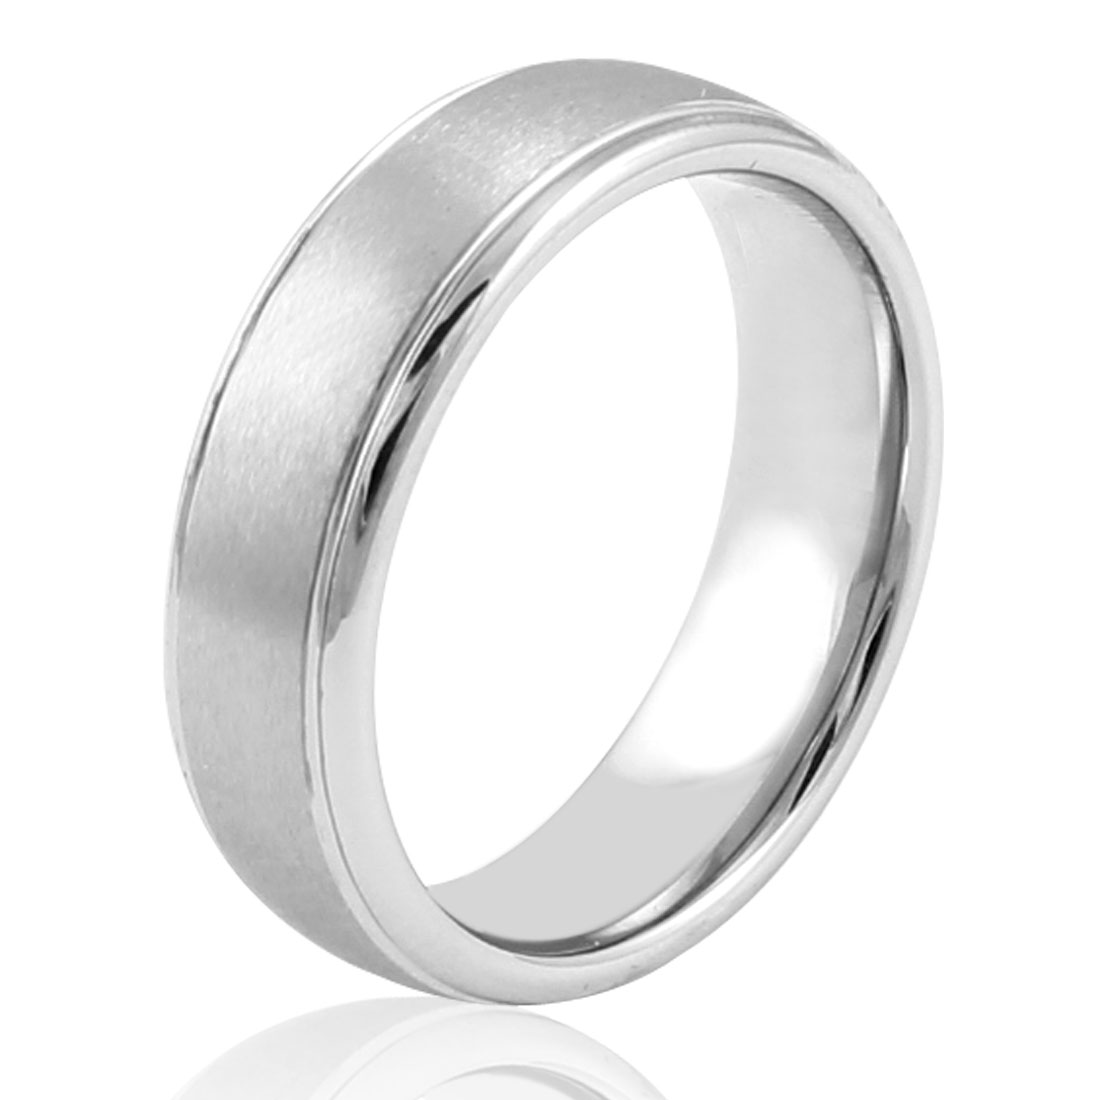 Men 6.5mm Wide Tungsten Steel Band Ring Fashion Jewelry Us Sz 9